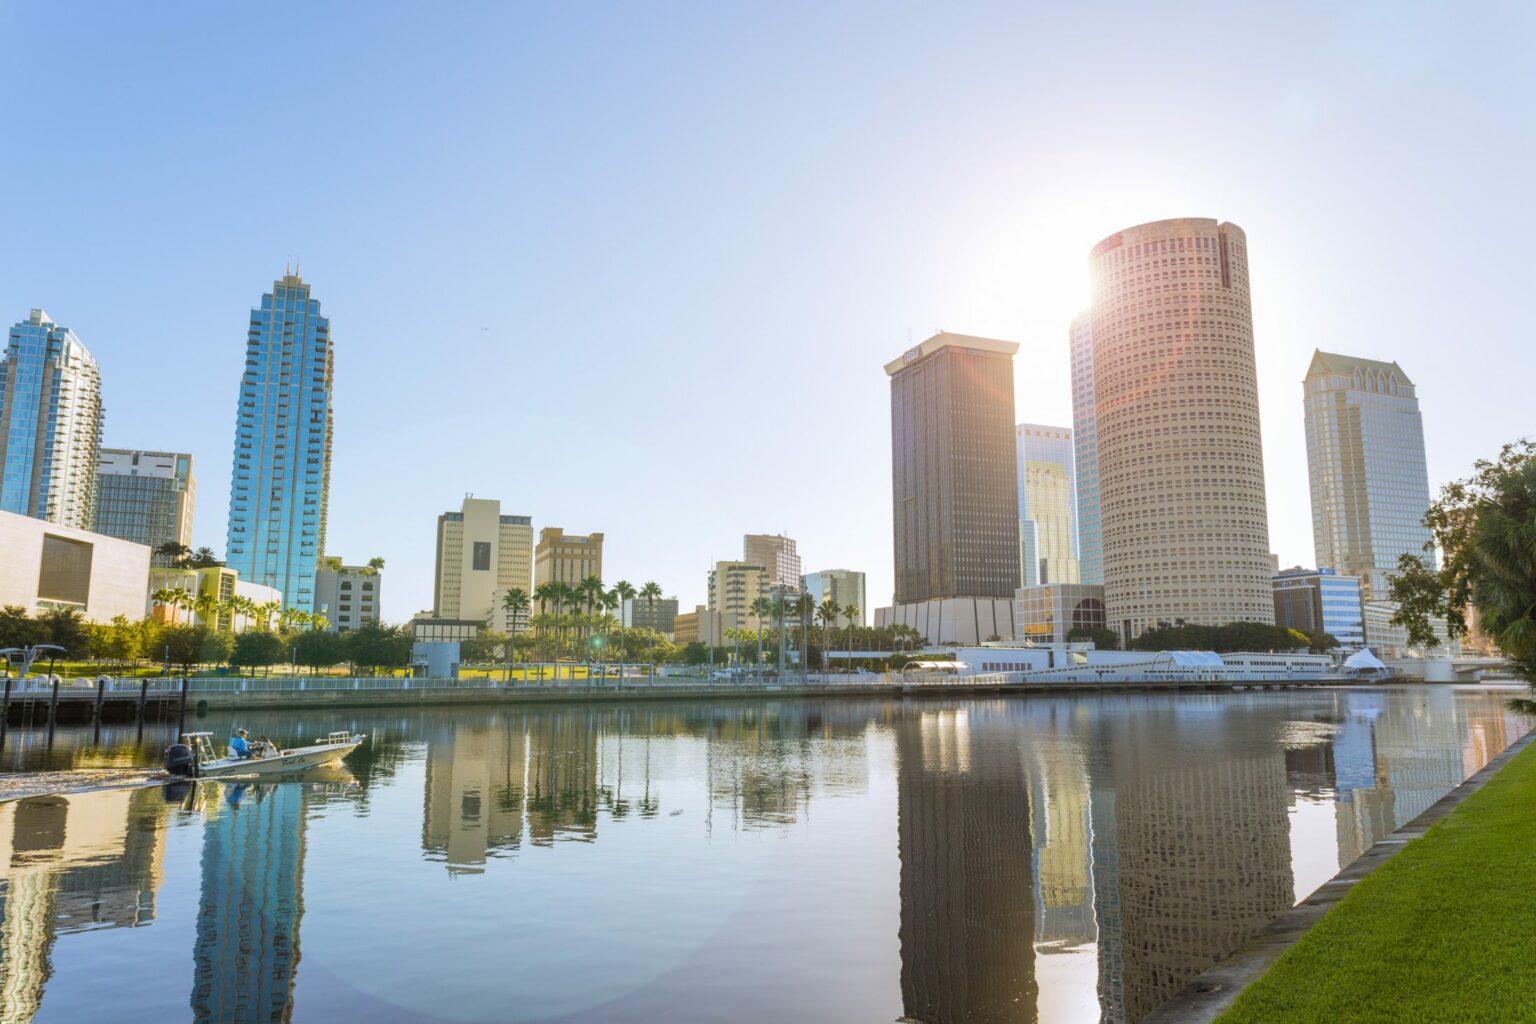 Tampa Bay's Rich Diverse Cultural Exchange and Bites